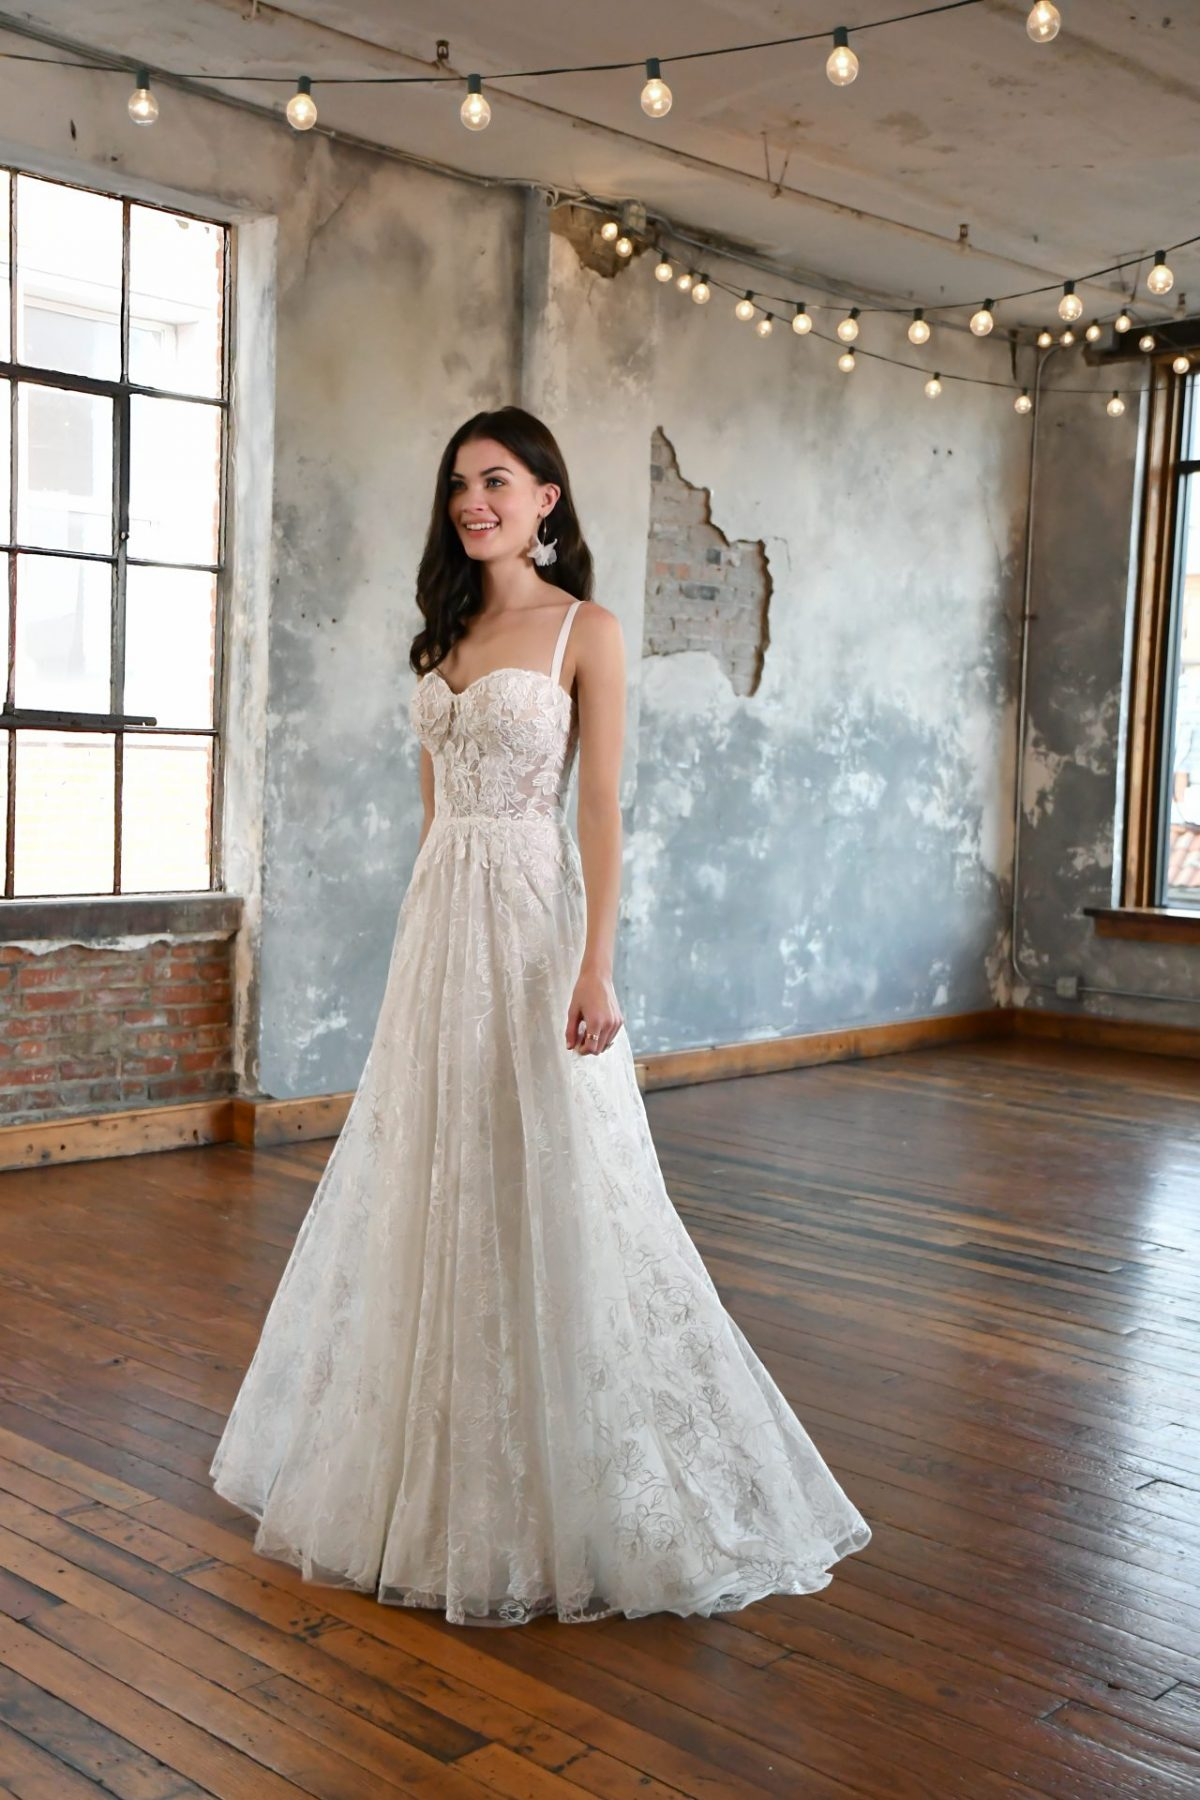 Rumur All Who wander available at Emily Bridalwear in Sheffield